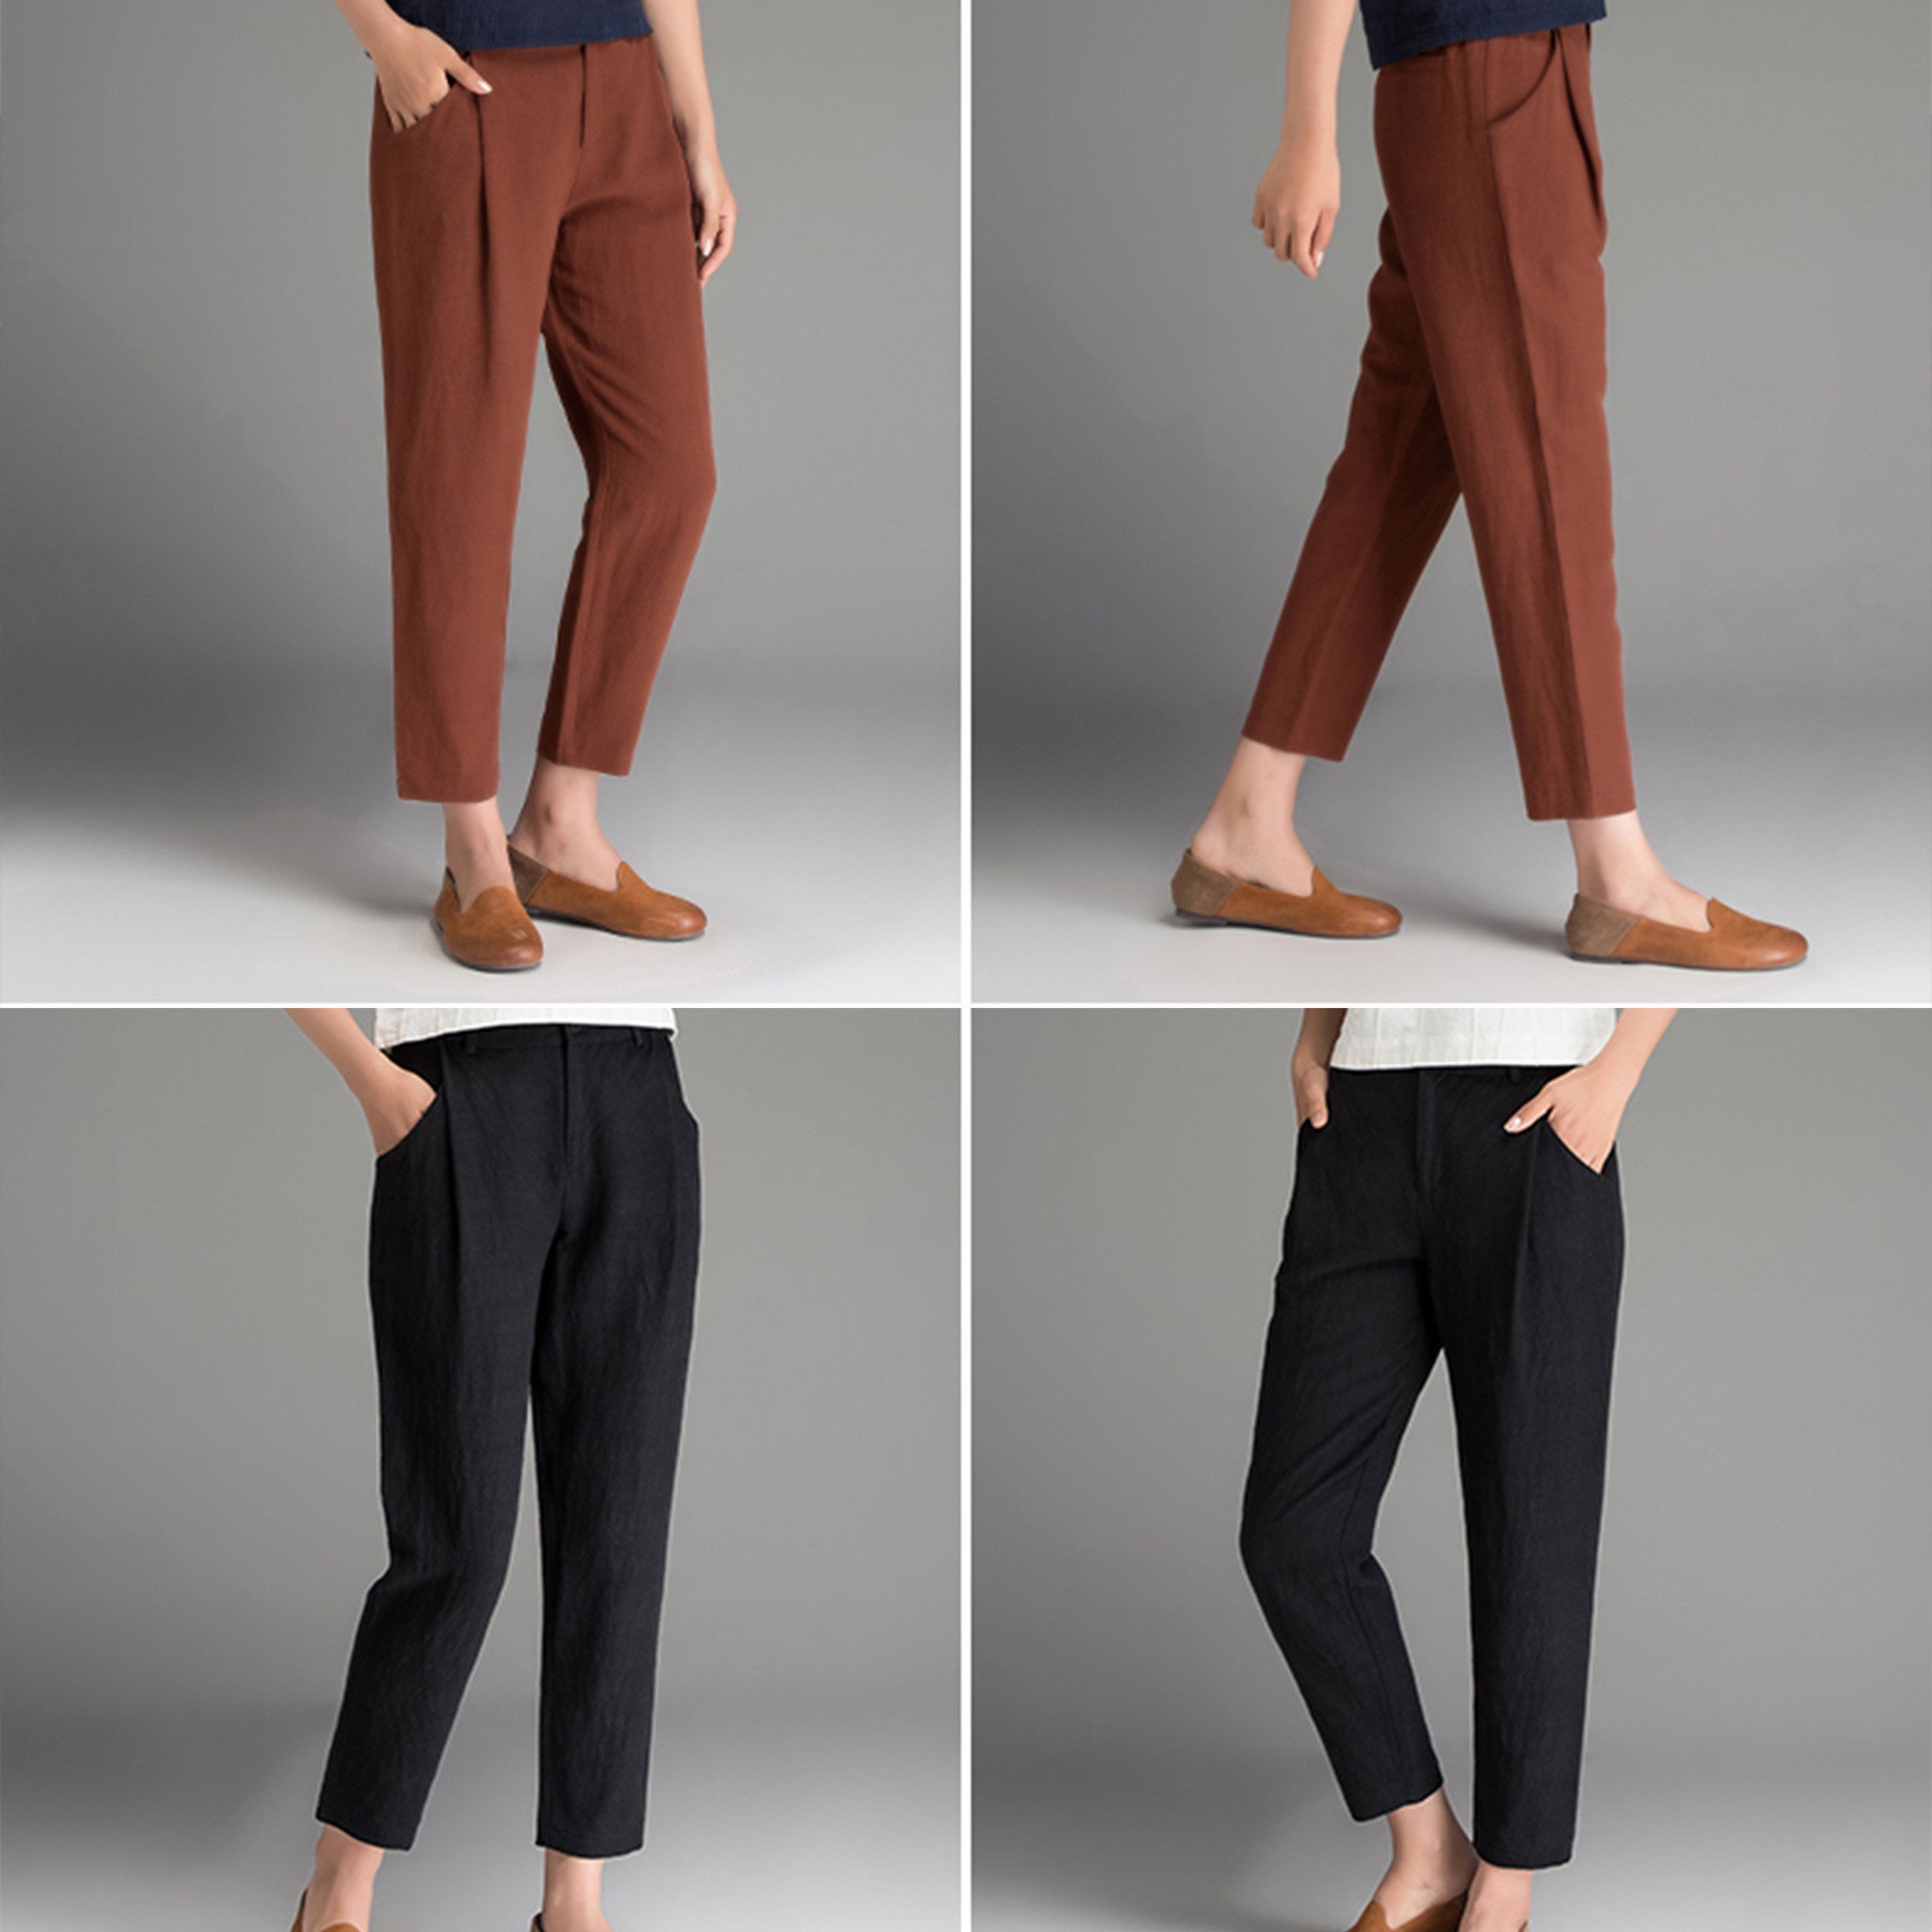 Ladiess Fashion Leisure Preppy Style Pants